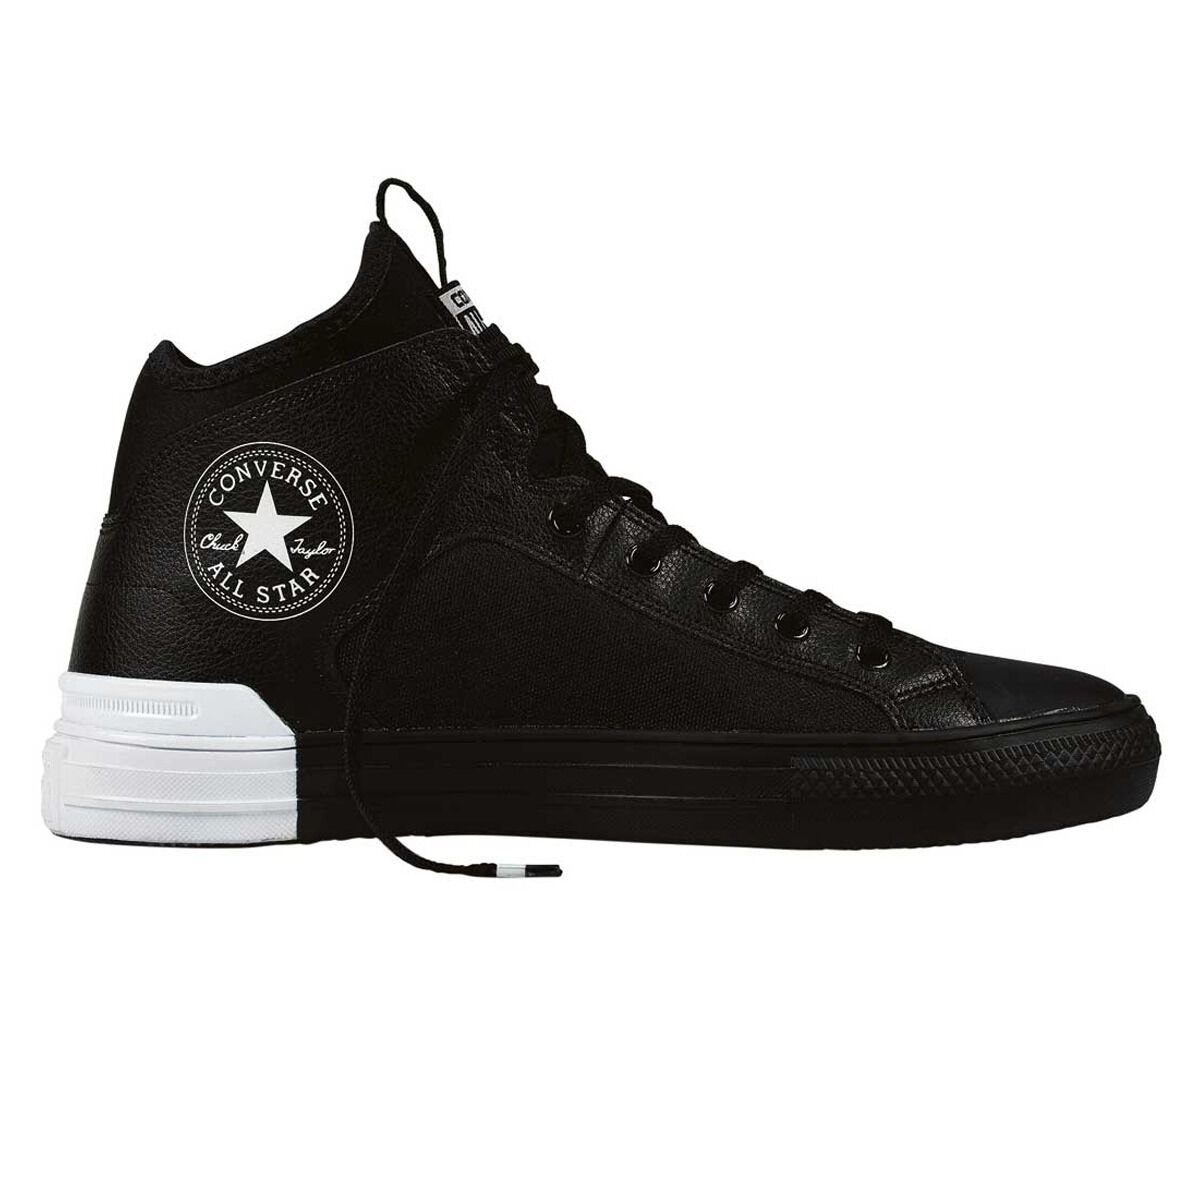 96e375d00a5f ... get converse chuck taylor all star ultra high top casual shoes black  white us 4 4fc6e